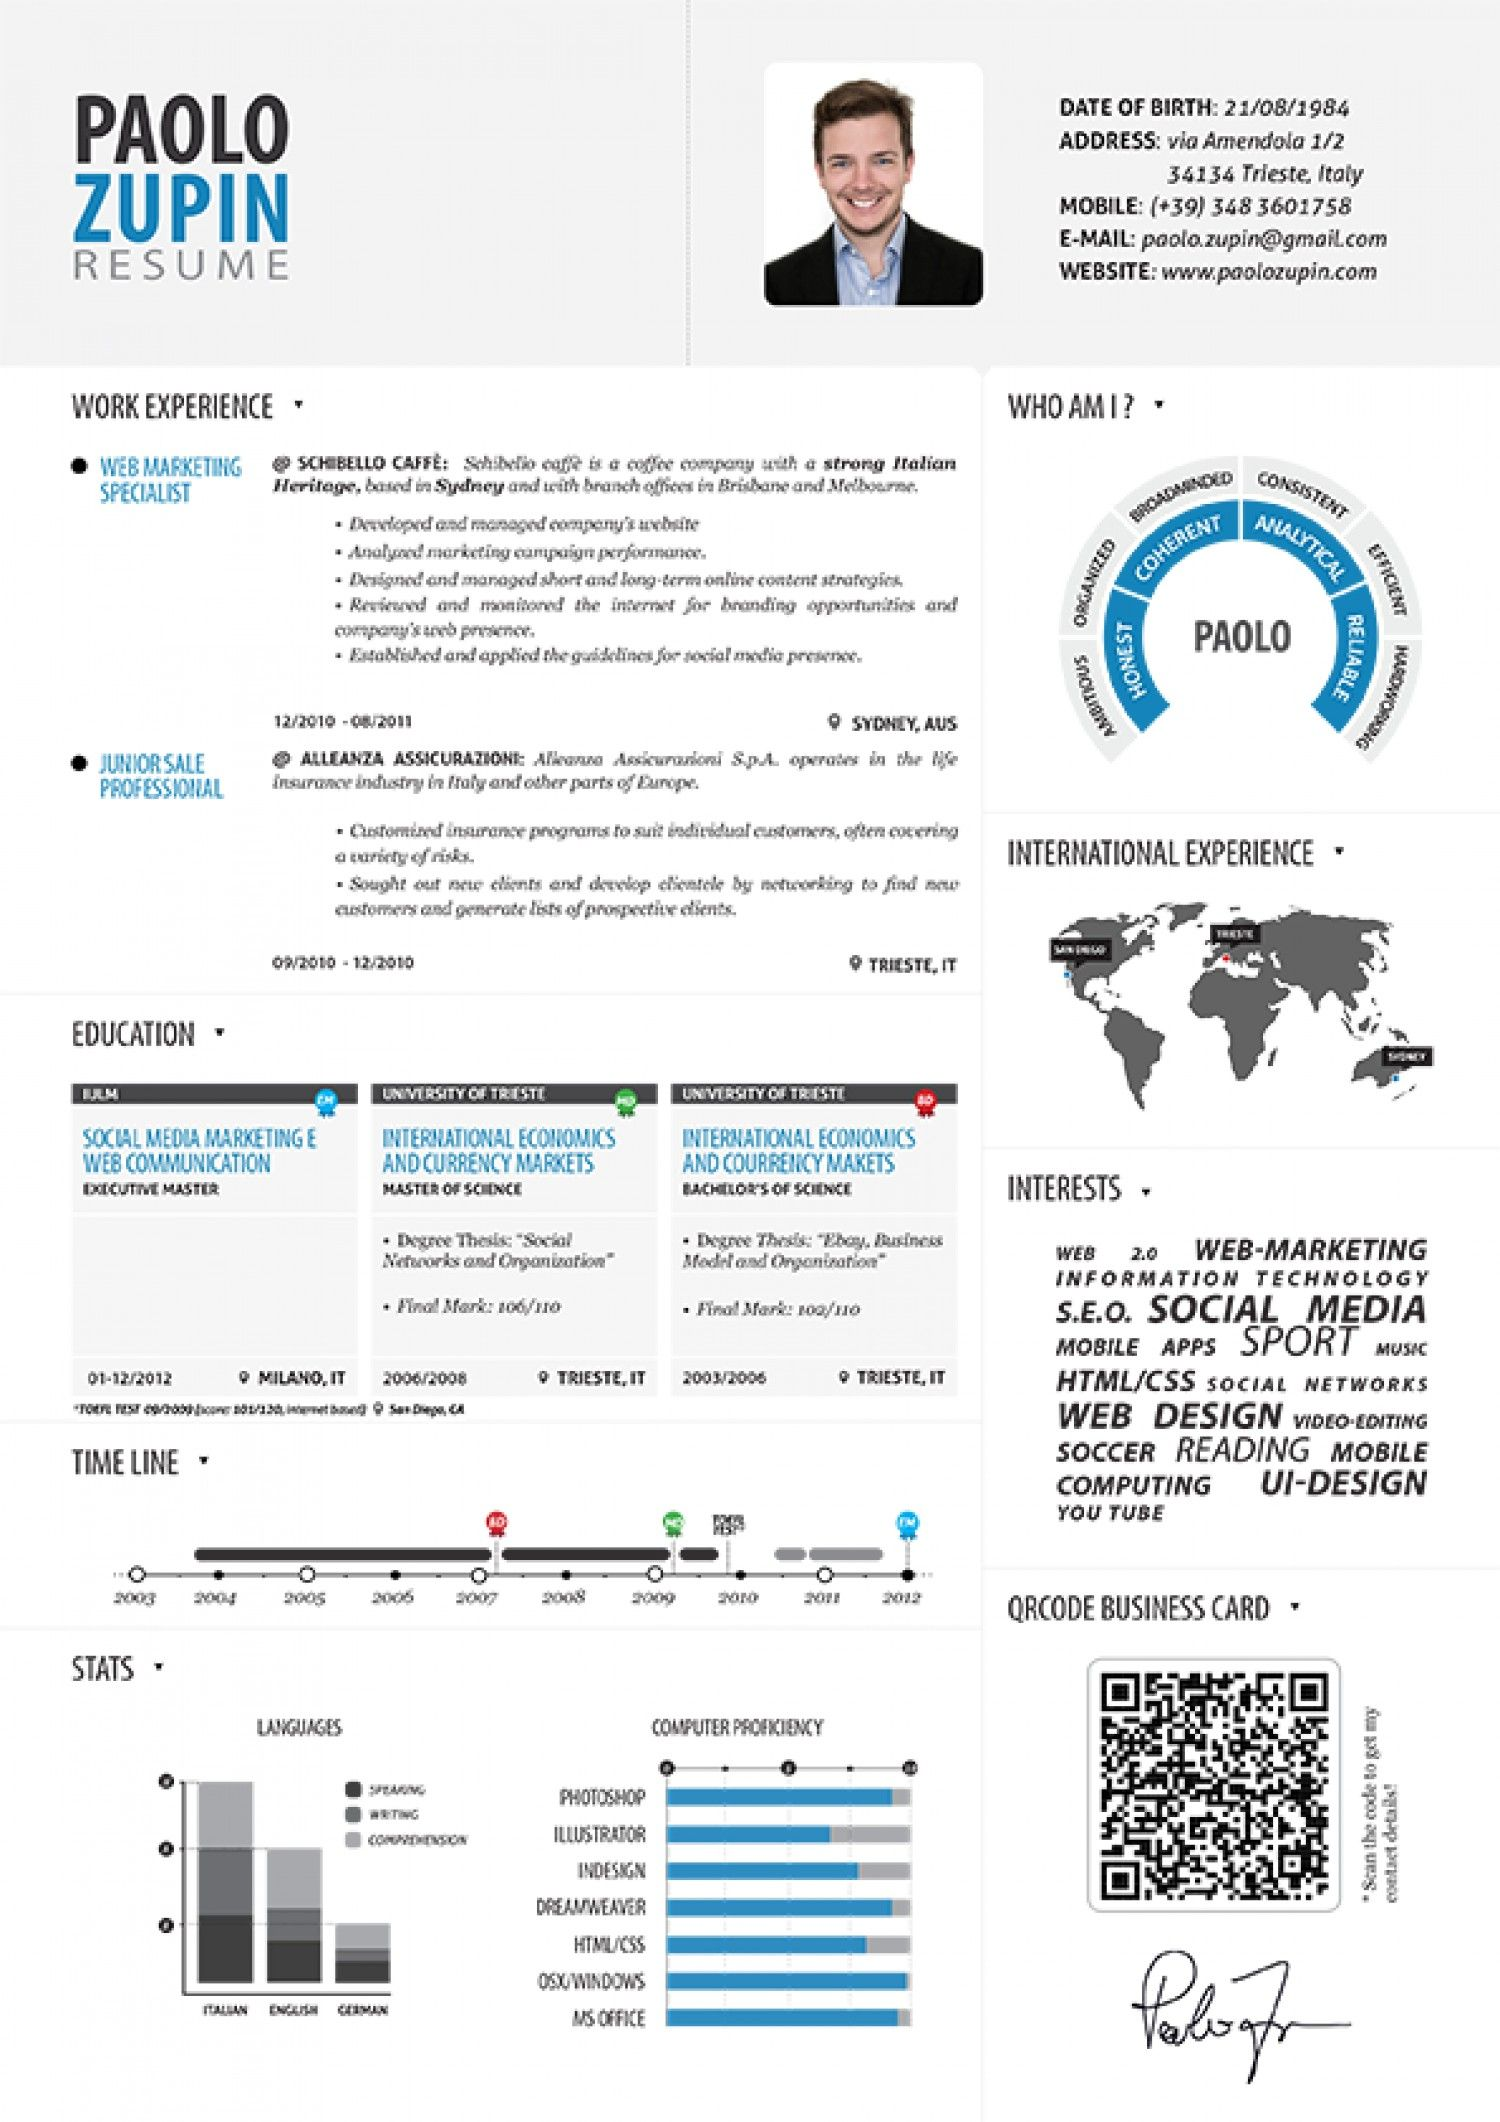 Opposenewapstandardsus  Splendid Infographic Resume Resume And Infographic On Pinterest With Marvelous Quality Control Inspector Resume Besides Free Resume Builder No Sign Up Furthermore Engineer Resume Example With Cute Examples Of Rn Resumes Also Product Manager Resume Examples In Addition Maintenance Job Resume And Restaurant Manager Resumes As Well As Profile For A Resume Additionally Sales Resume Keywords From Pinterestcom With Opposenewapstandardsus  Marvelous Infographic Resume Resume And Infographic On Pinterest With Cute Quality Control Inspector Resume Besides Free Resume Builder No Sign Up Furthermore Engineer Resume Example And Splendid Examples Of Rn Resumes Also Product Manager Resume Examples In Addition Maintenance Job Resume From Pinterestcom